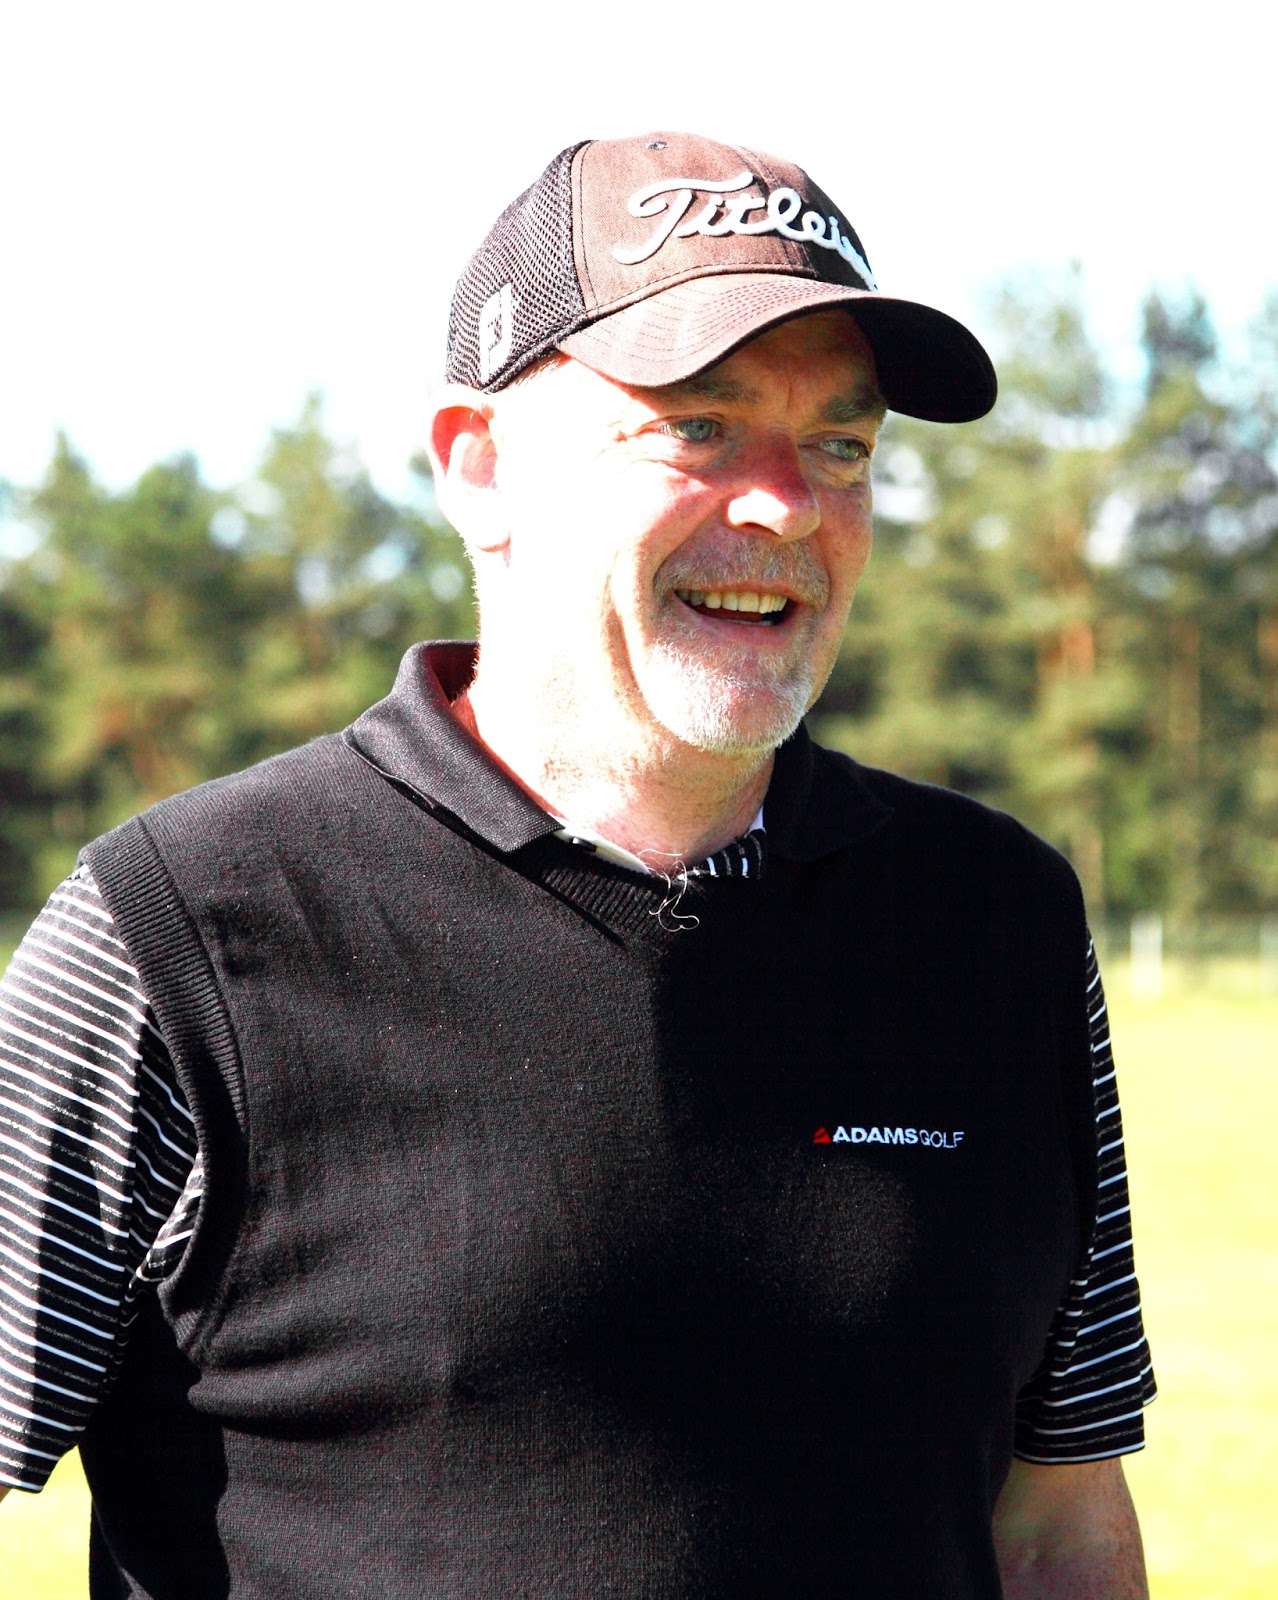 scottish golf view golf news from around the world scottish joe mcmanus uphall pictured below and rob craw glenbervie led the qualifiers for the scottish seniors matchplay championship at stirling today